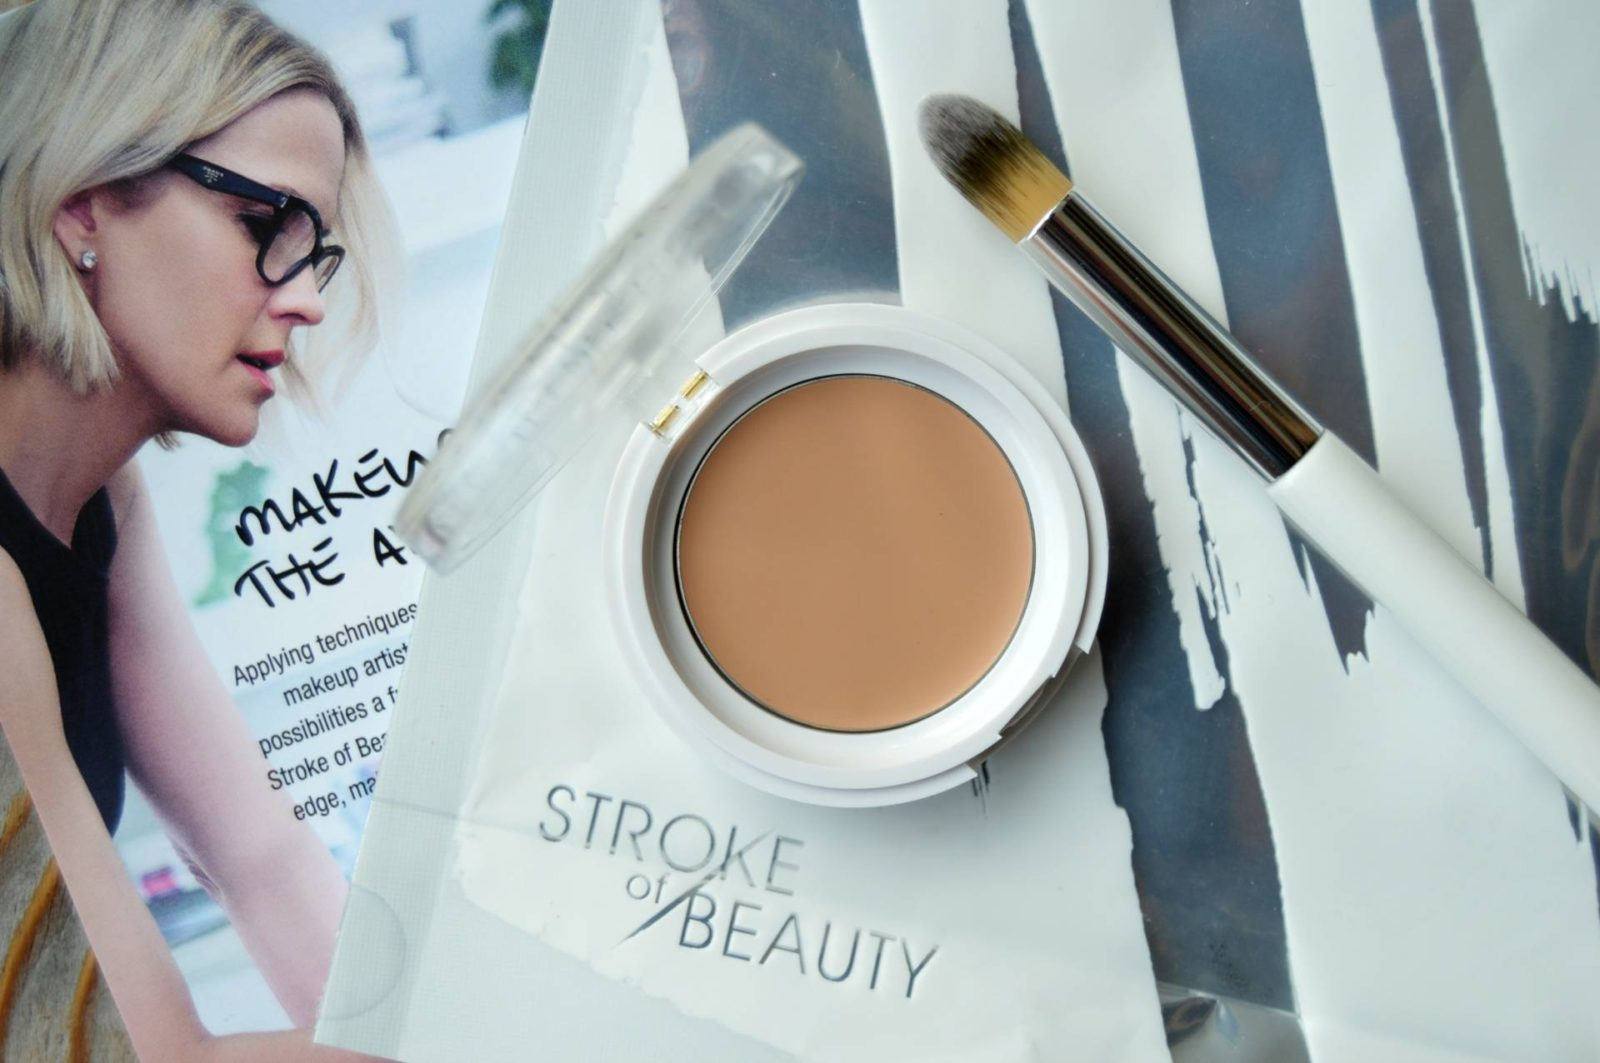 Life after Smashbox: Holly Mordini's Stroke of Beauty Concealer #TVshopping